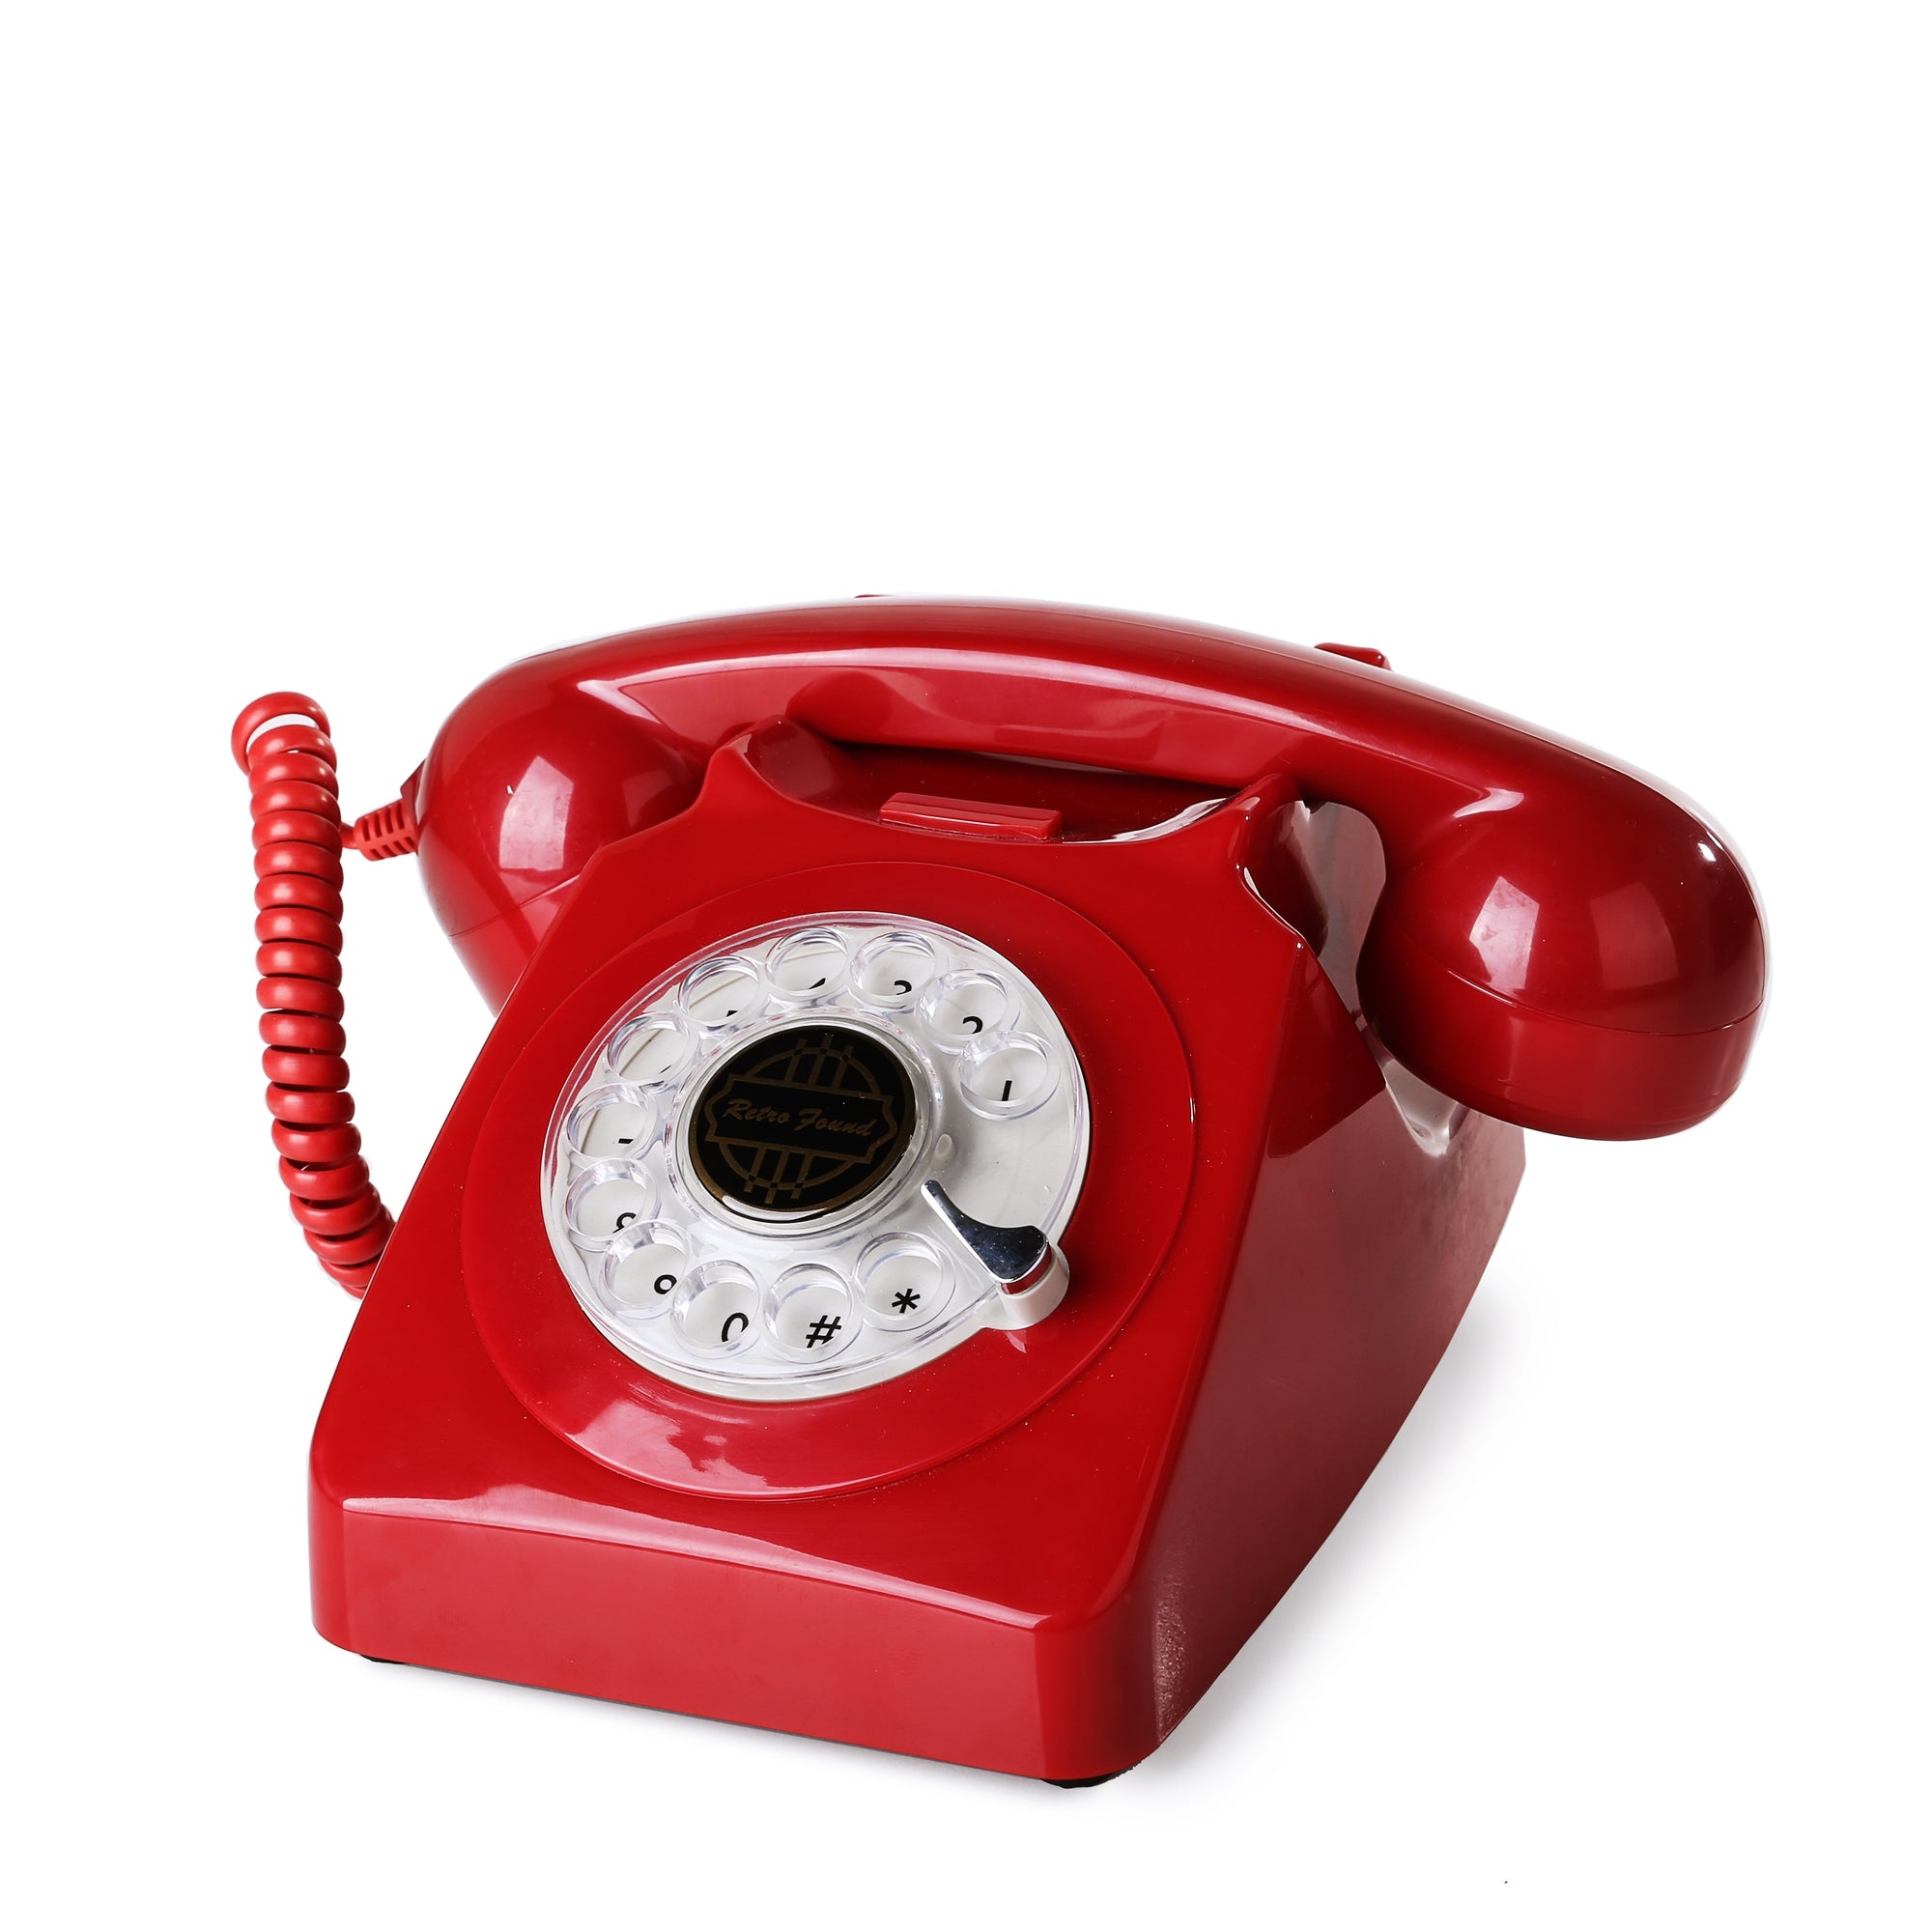 1960 Rotary Telephone (Red)